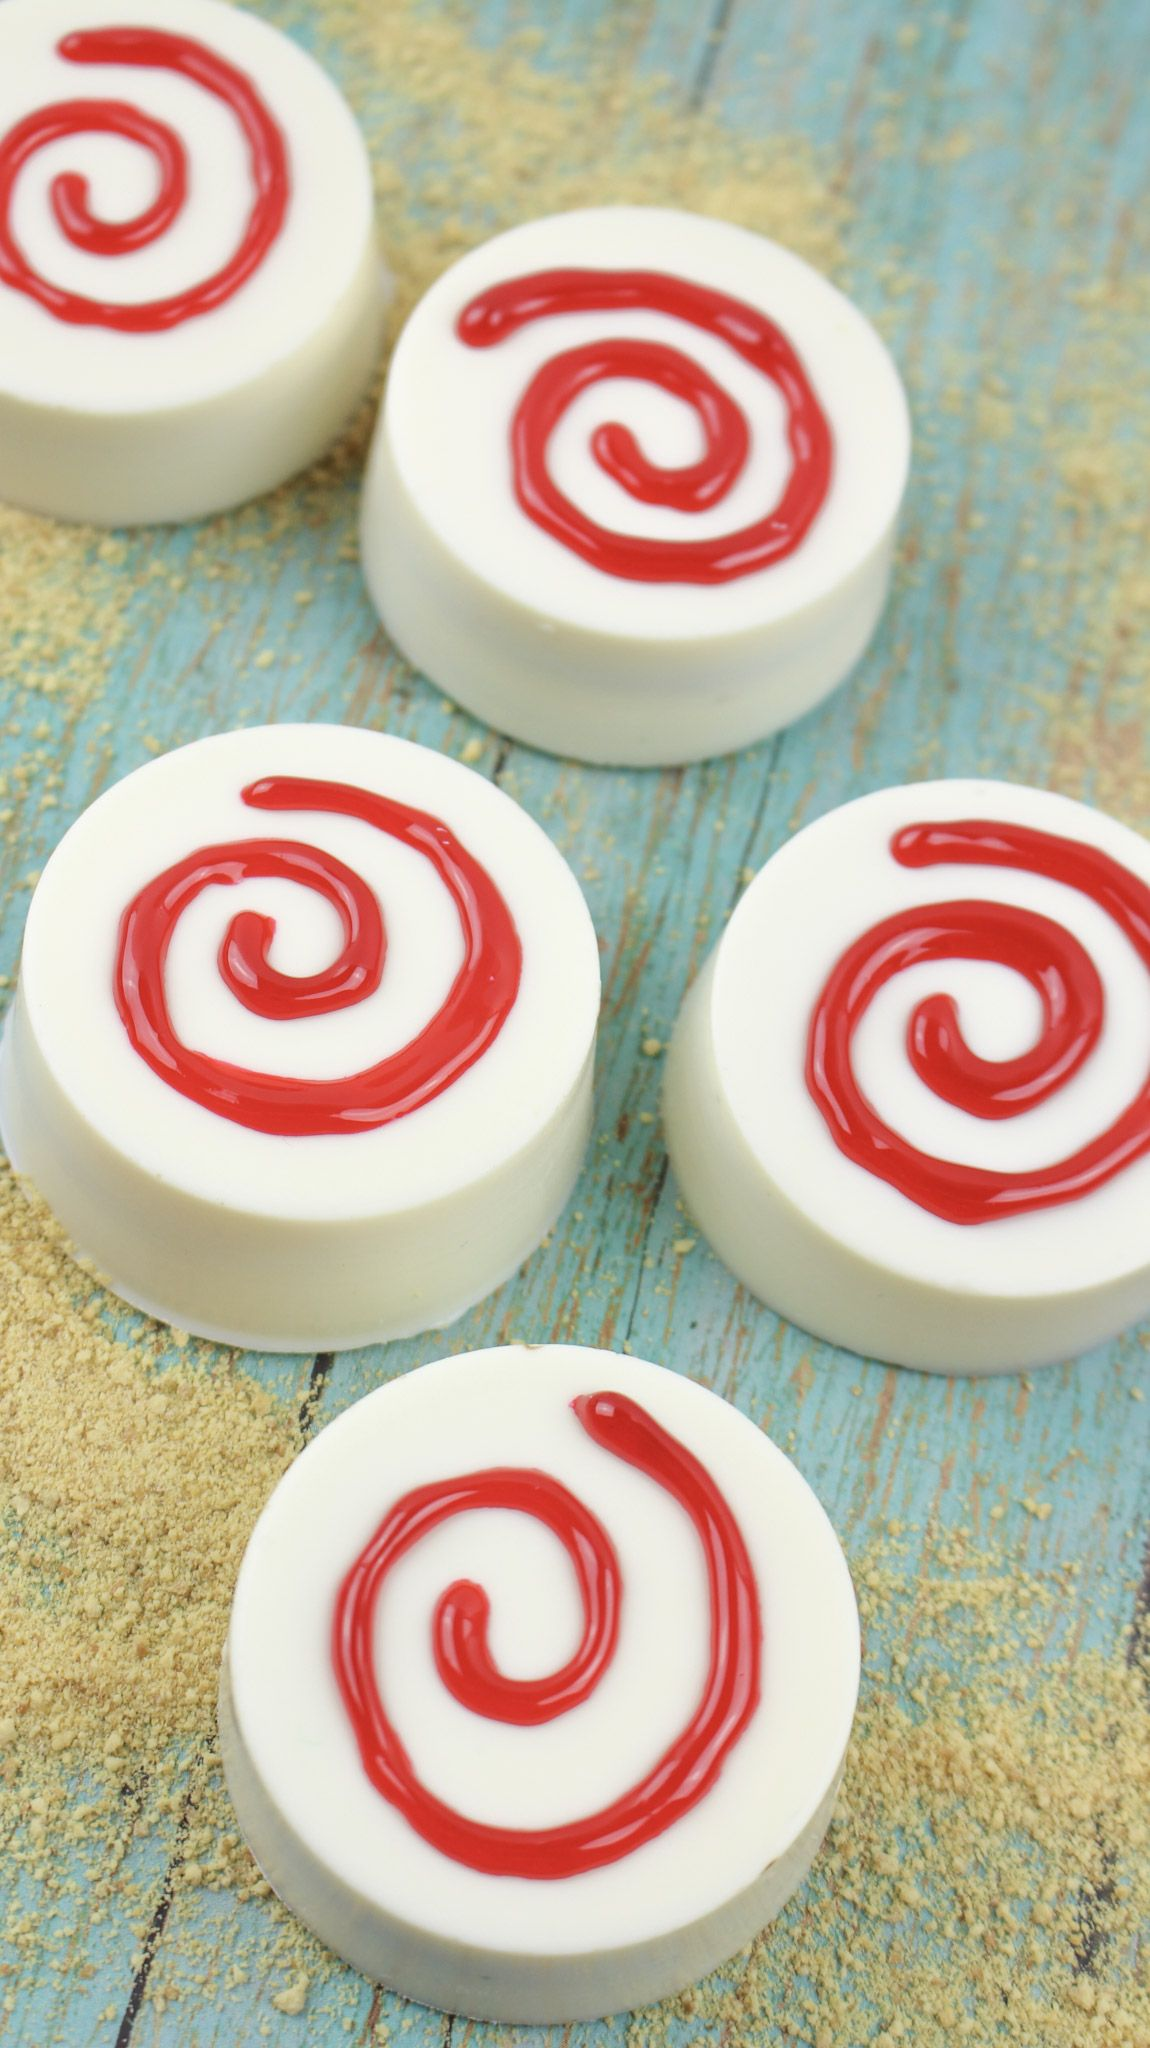 Moana Inspired White Chocolate Oreos | White chocolate, Chocolate ...